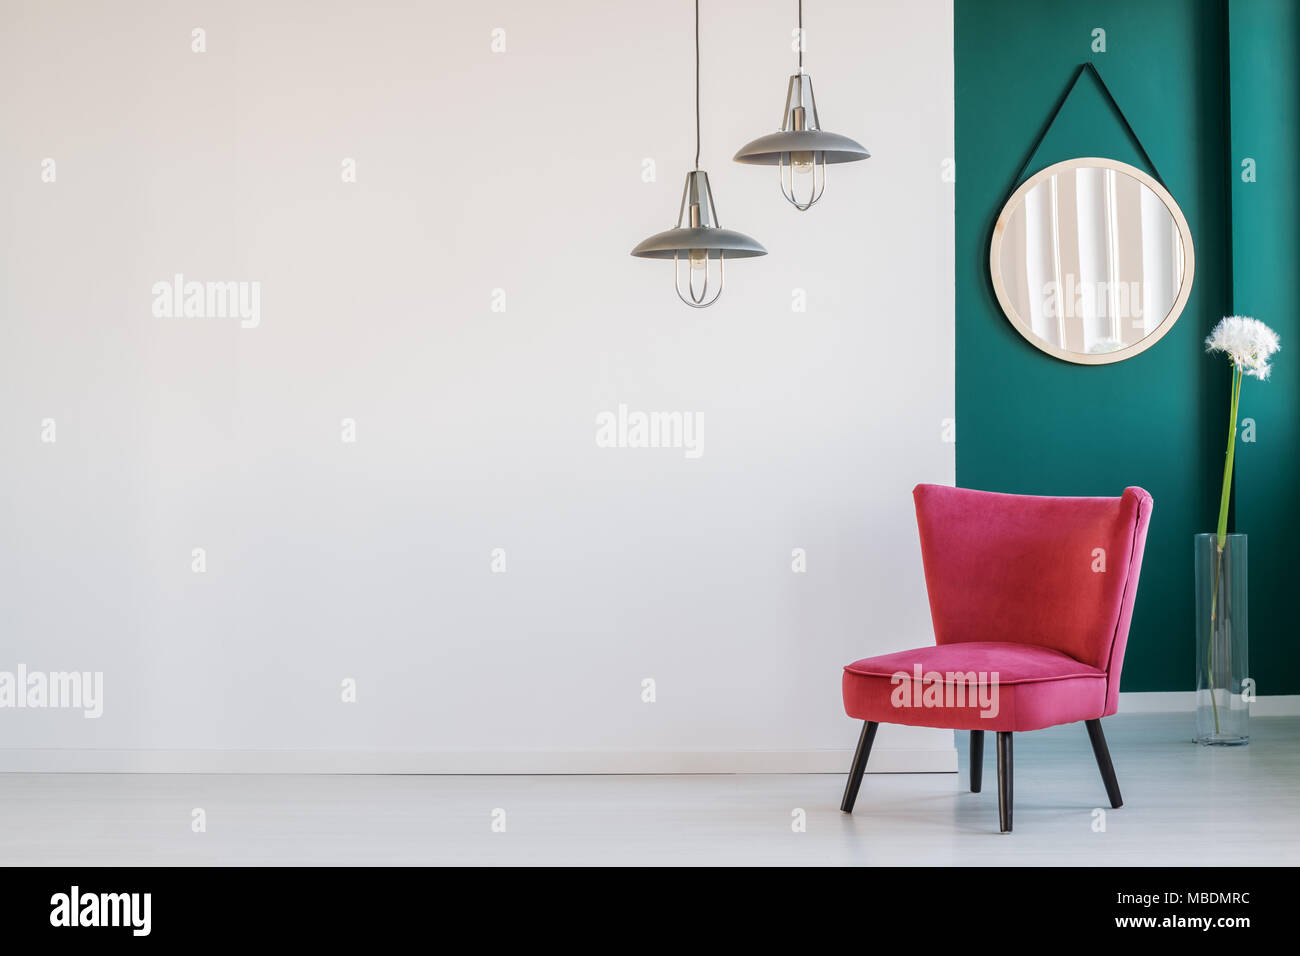 Lamps Above Red Chair And Dandelion Against Green Wall With Round Mirror In  Living Room Interior